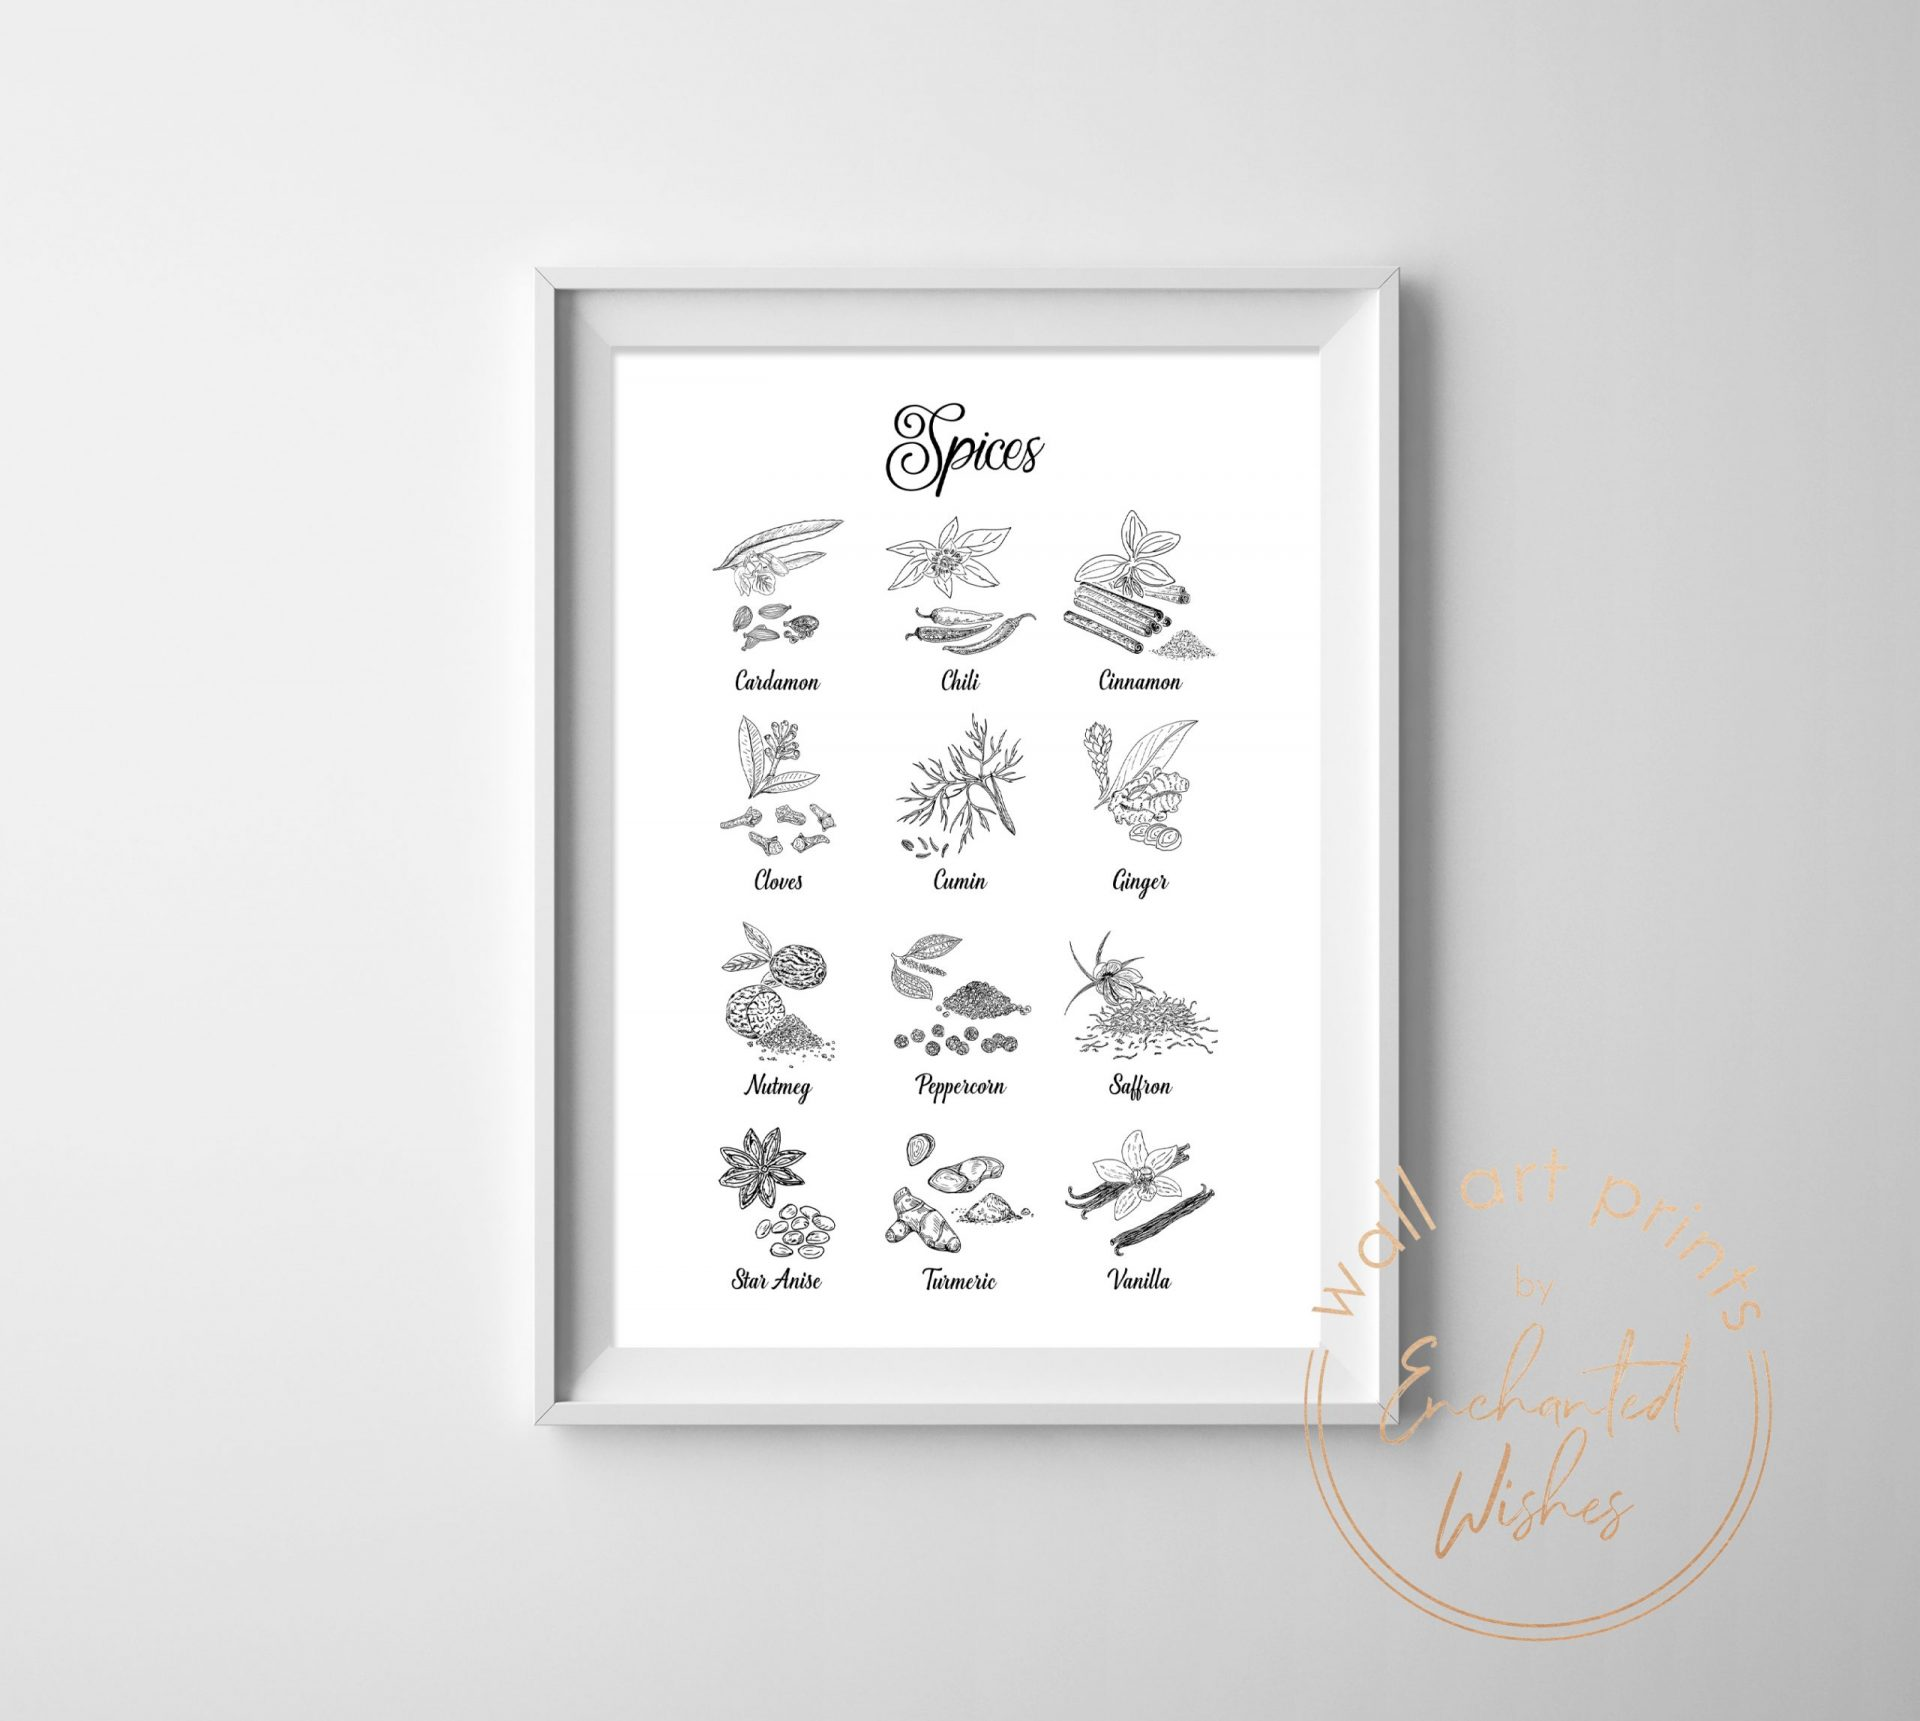 Spices print